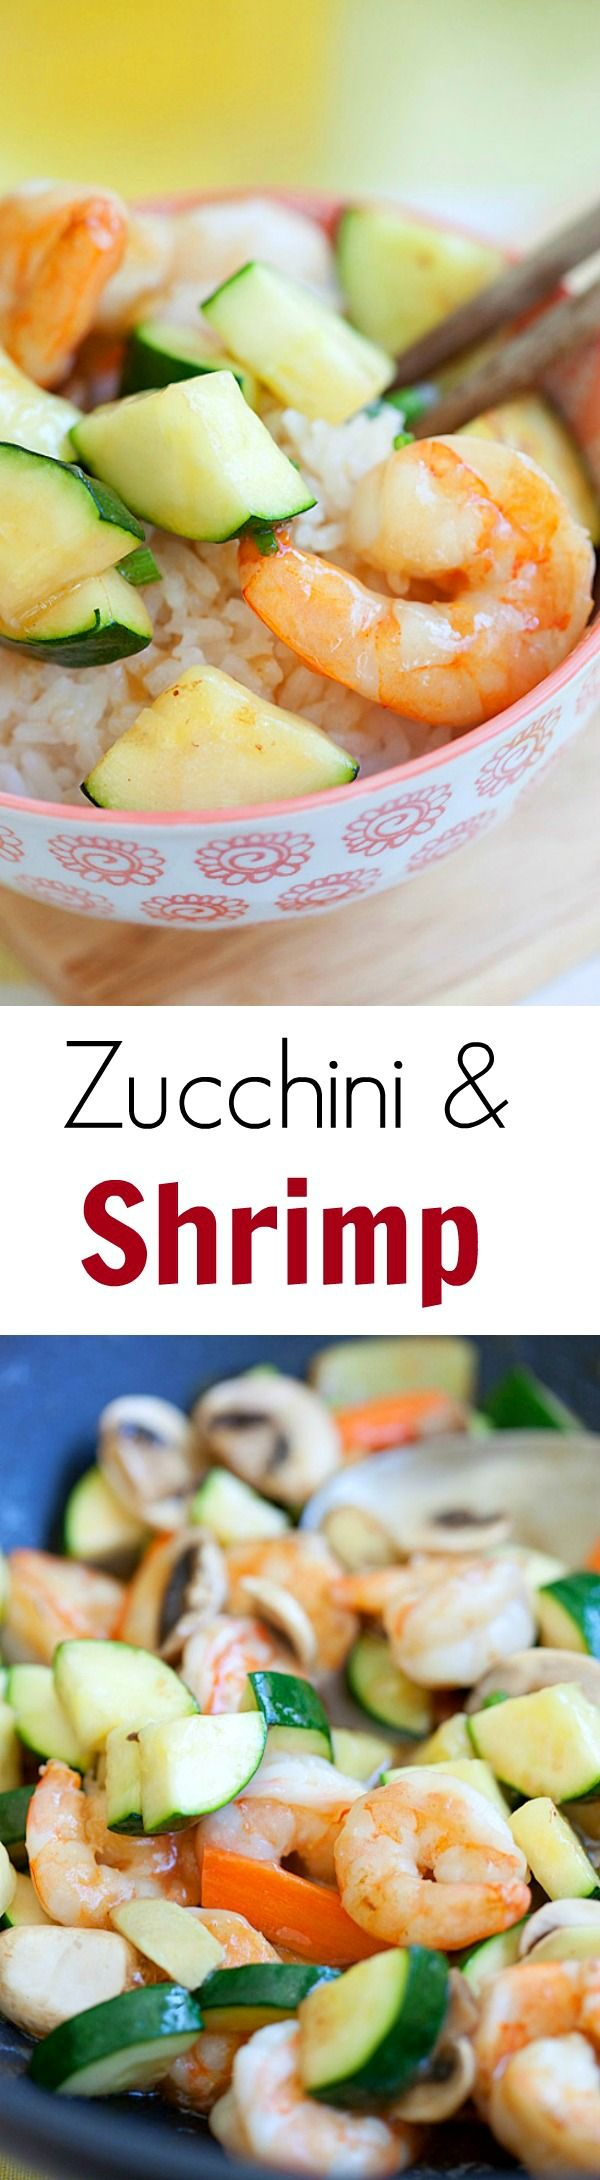 Zucchini and Shrimp Stir-Fry - Super easy, refreshing, yummy and takes less than 30 mins. Make it tonight for dinner!! | rasamalaysia.com